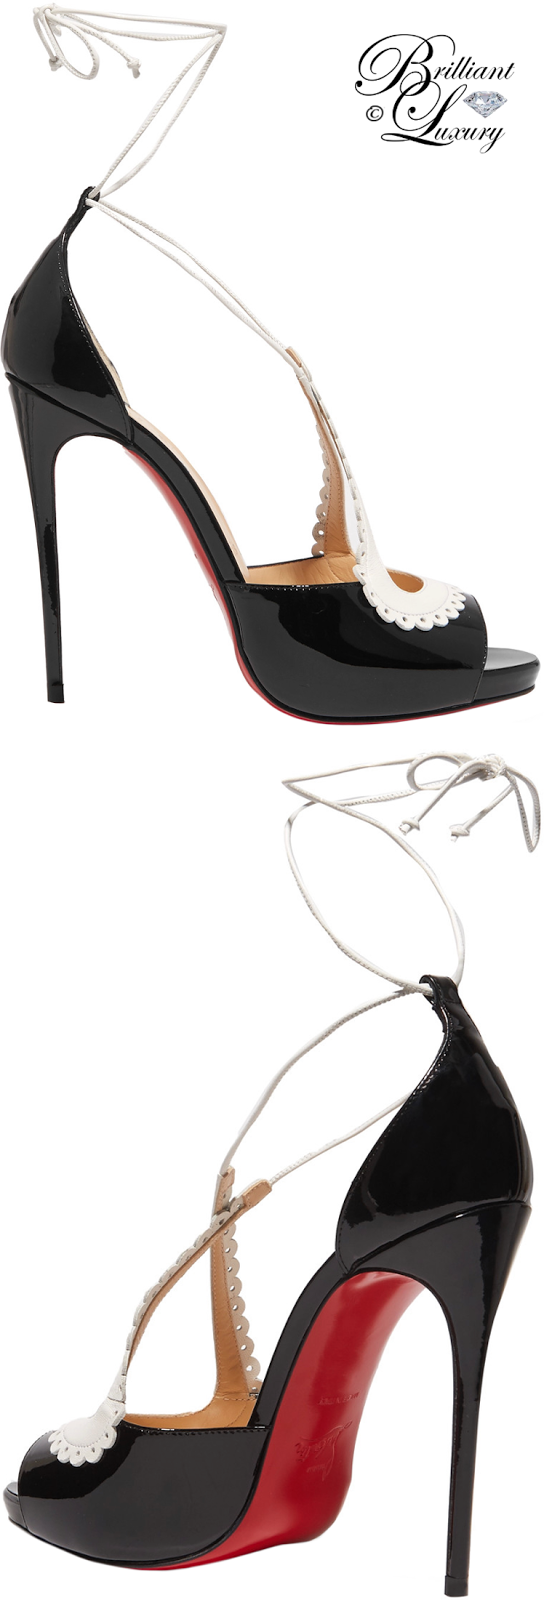 Brilliant Luxury ♦ Christian Louboutin Operissima Sandals